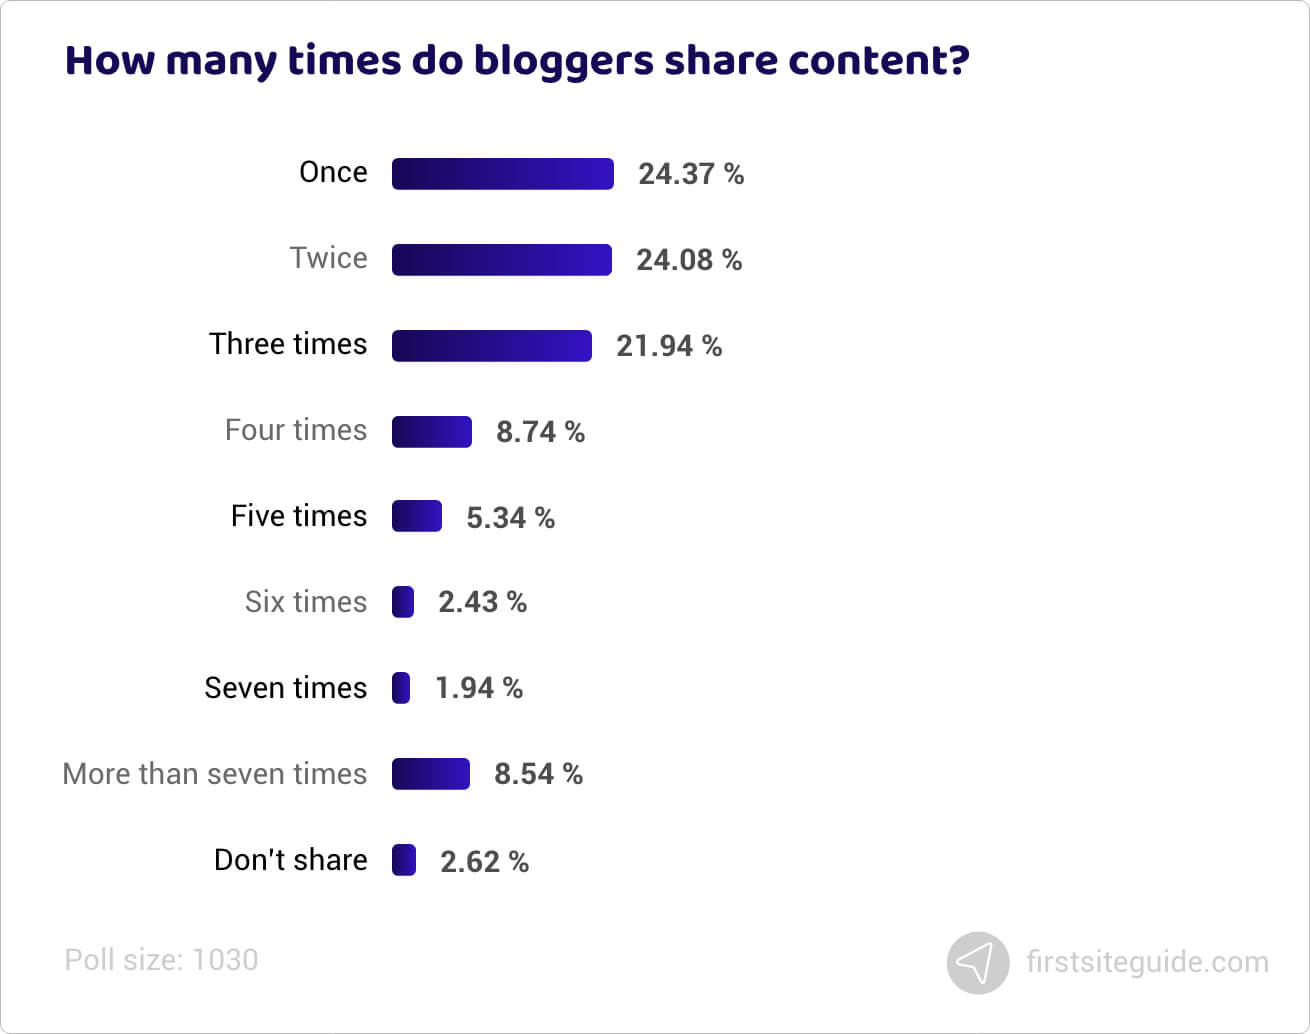 How many times do bloggers share content